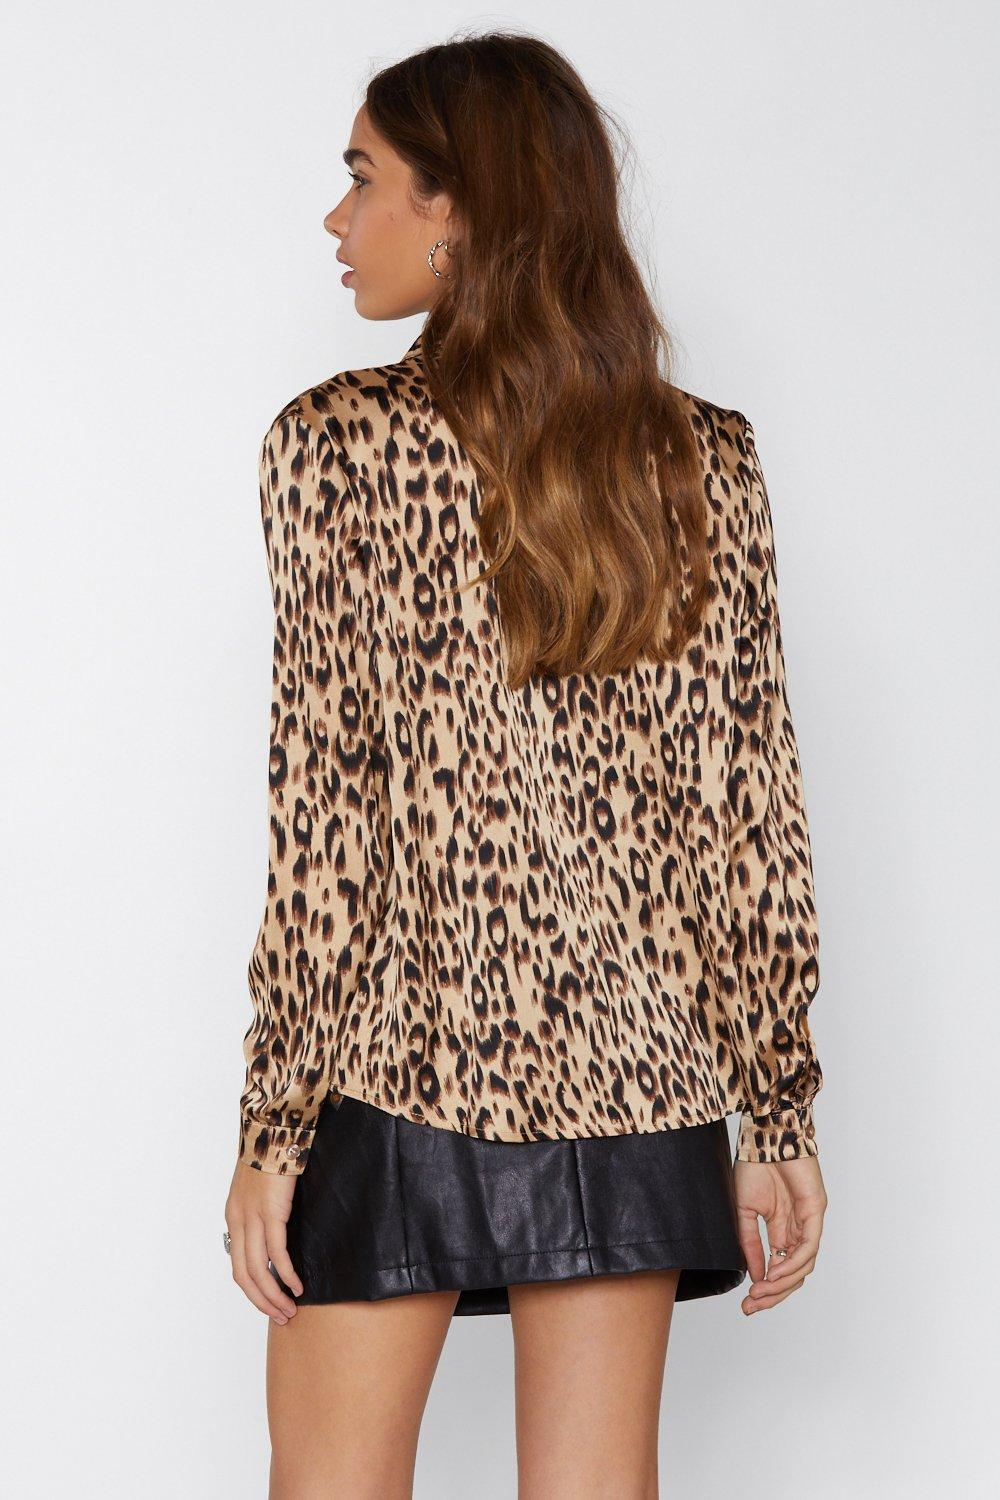 Leopard Print Shirt. Hover to zoom d5e5bc99e